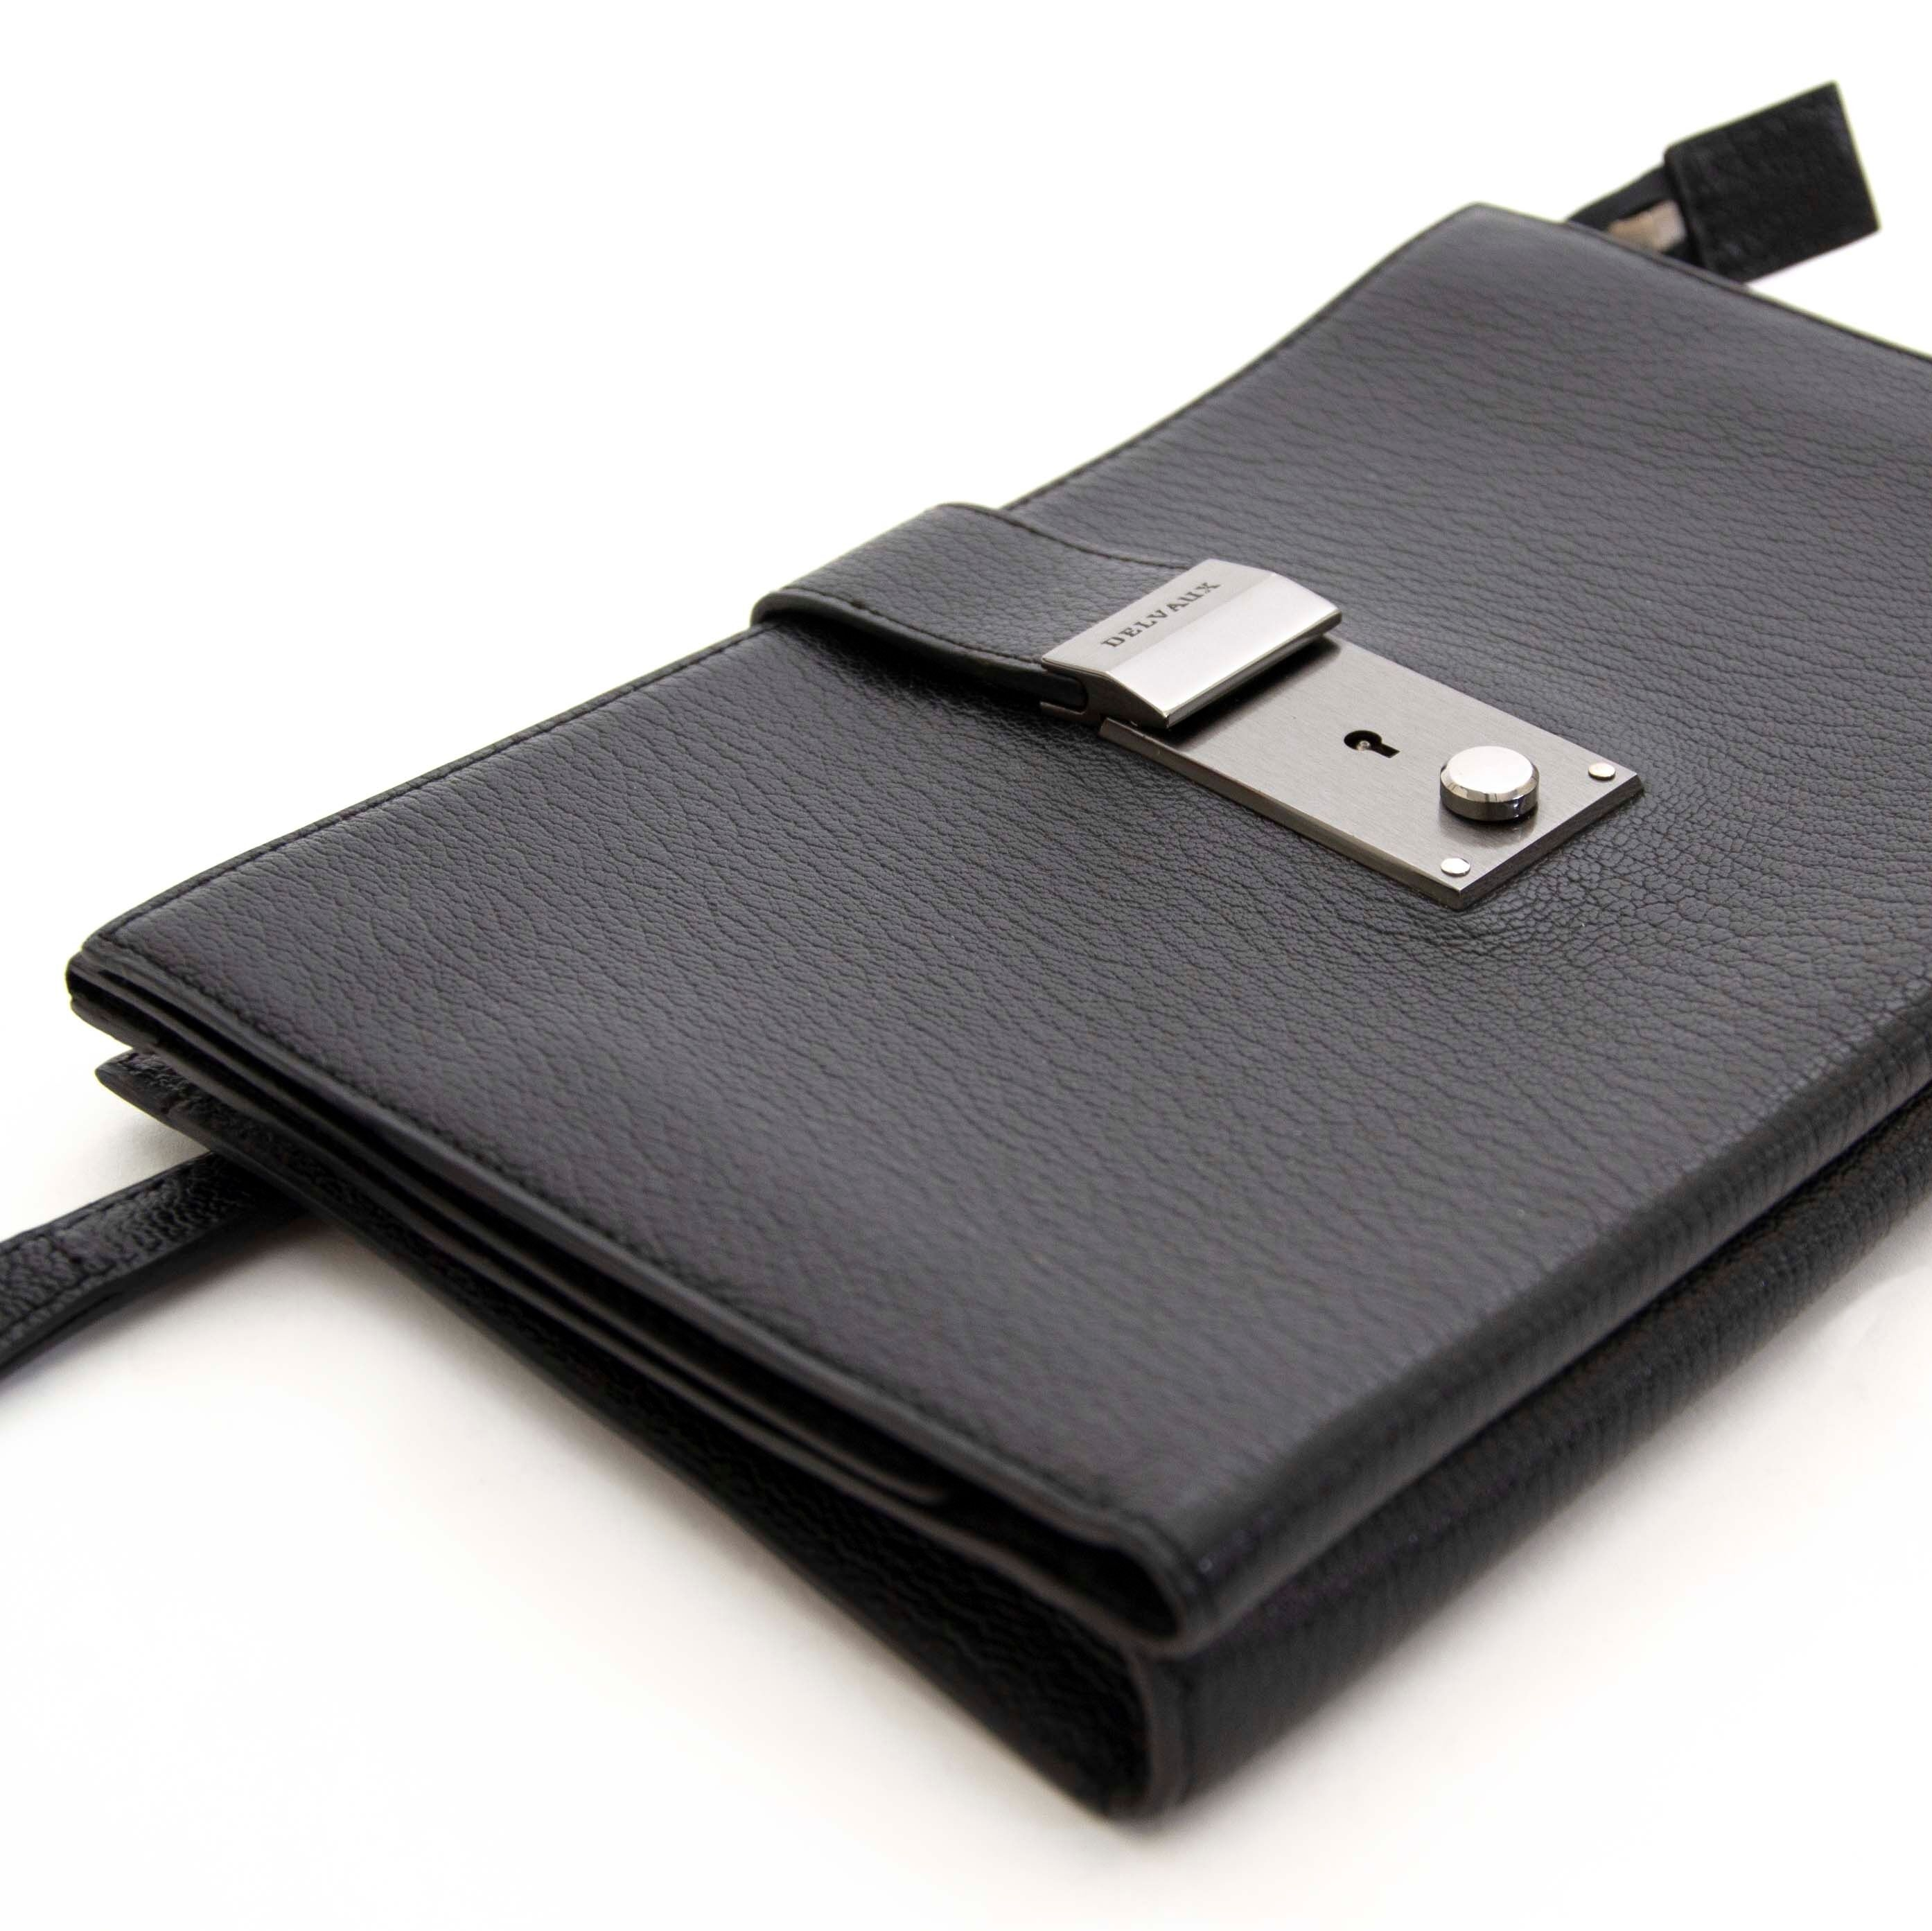 Buy this authentic second hand vintage Delvaux Black Pochette at online webshop LabelLOV